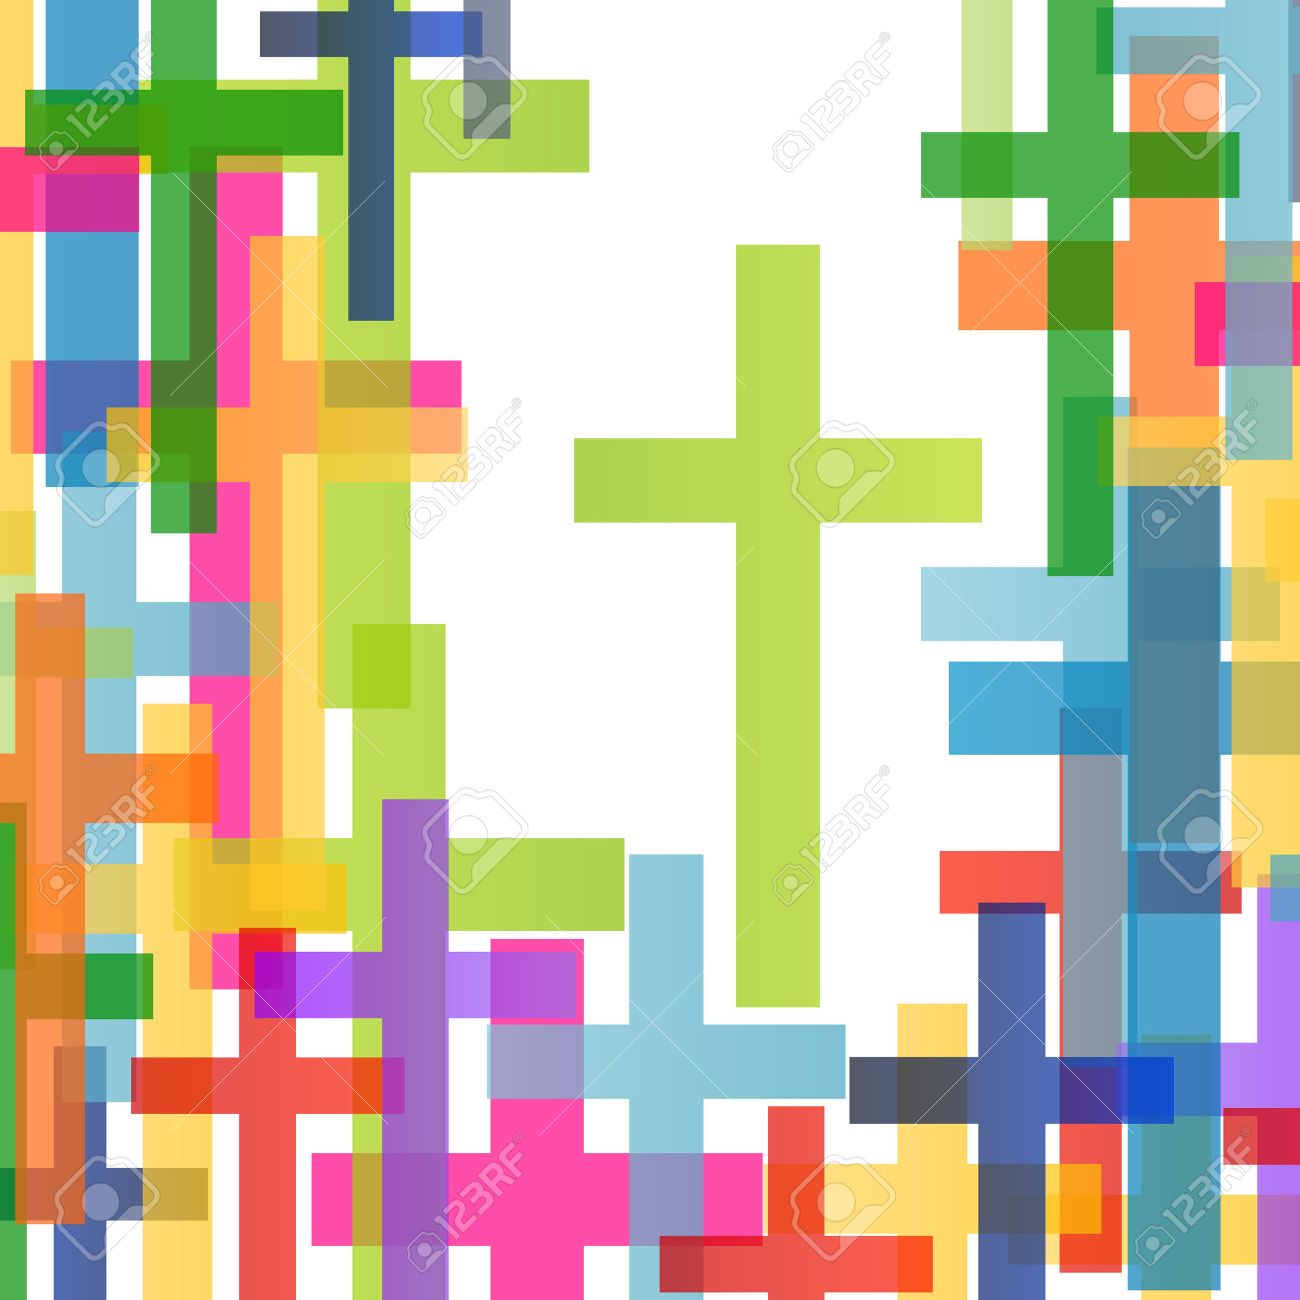 Christianity religion cross concept abstract background vector illustration - 36769344